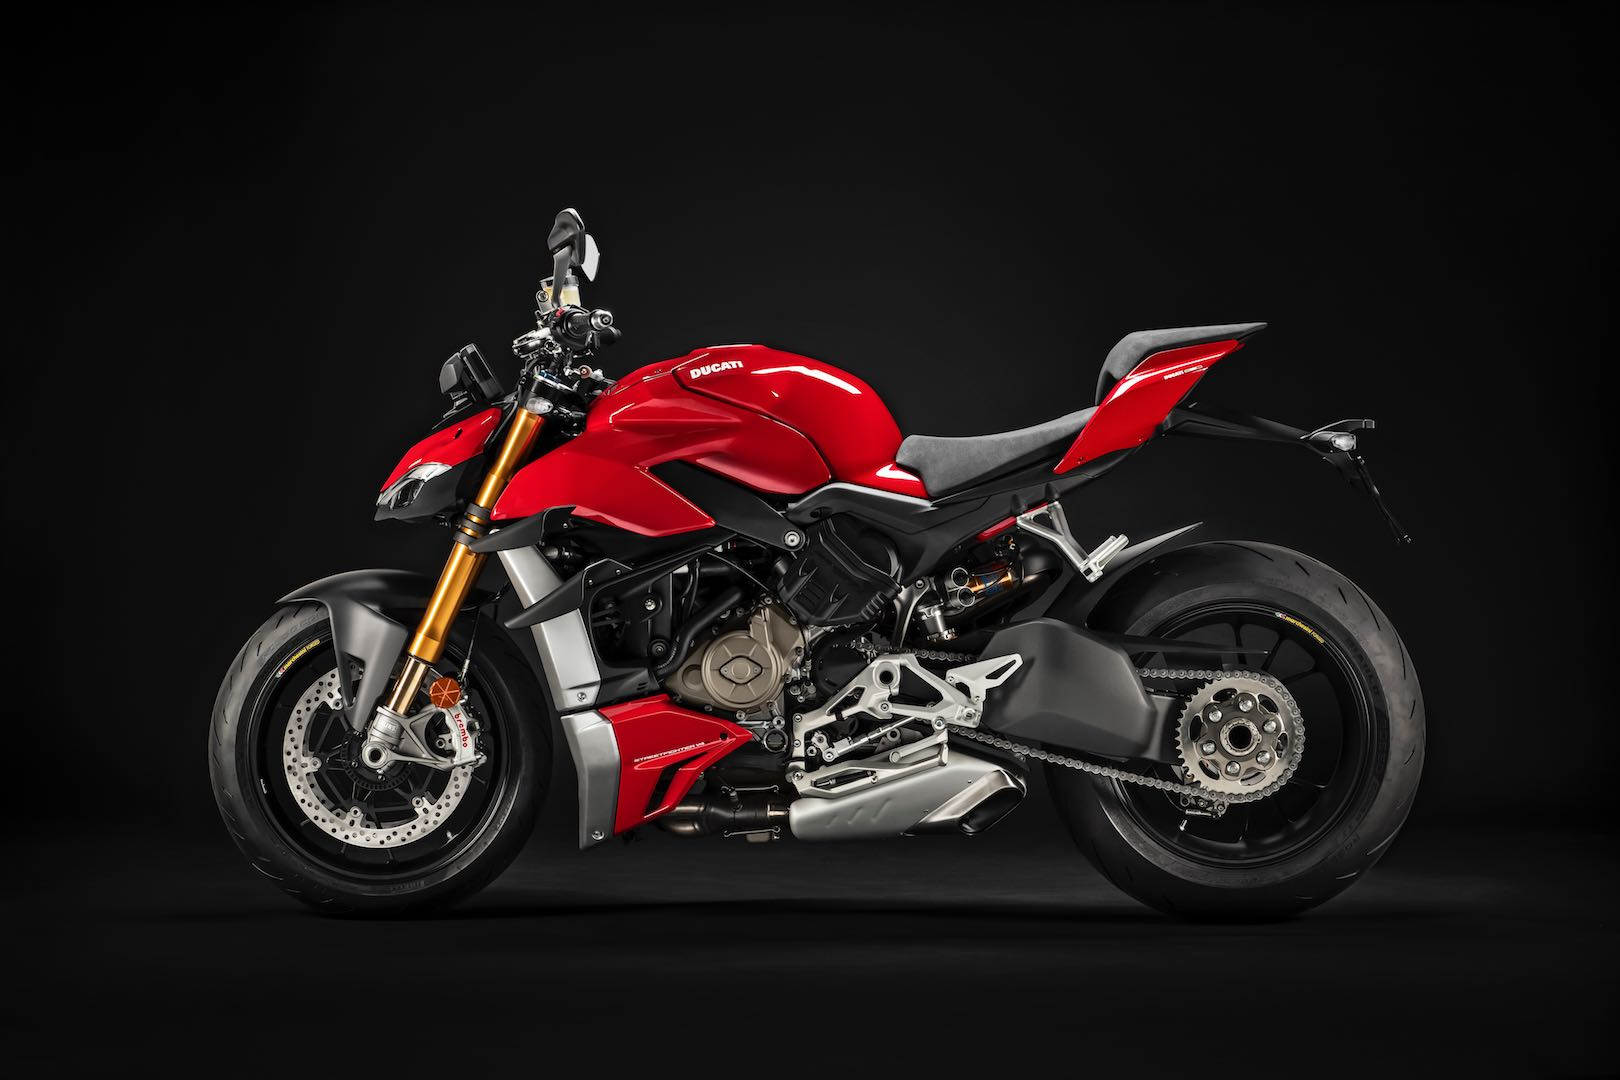 2020 Ducati Streetfighter V4 & V4S First Look: 15 Fast Facts (Video)